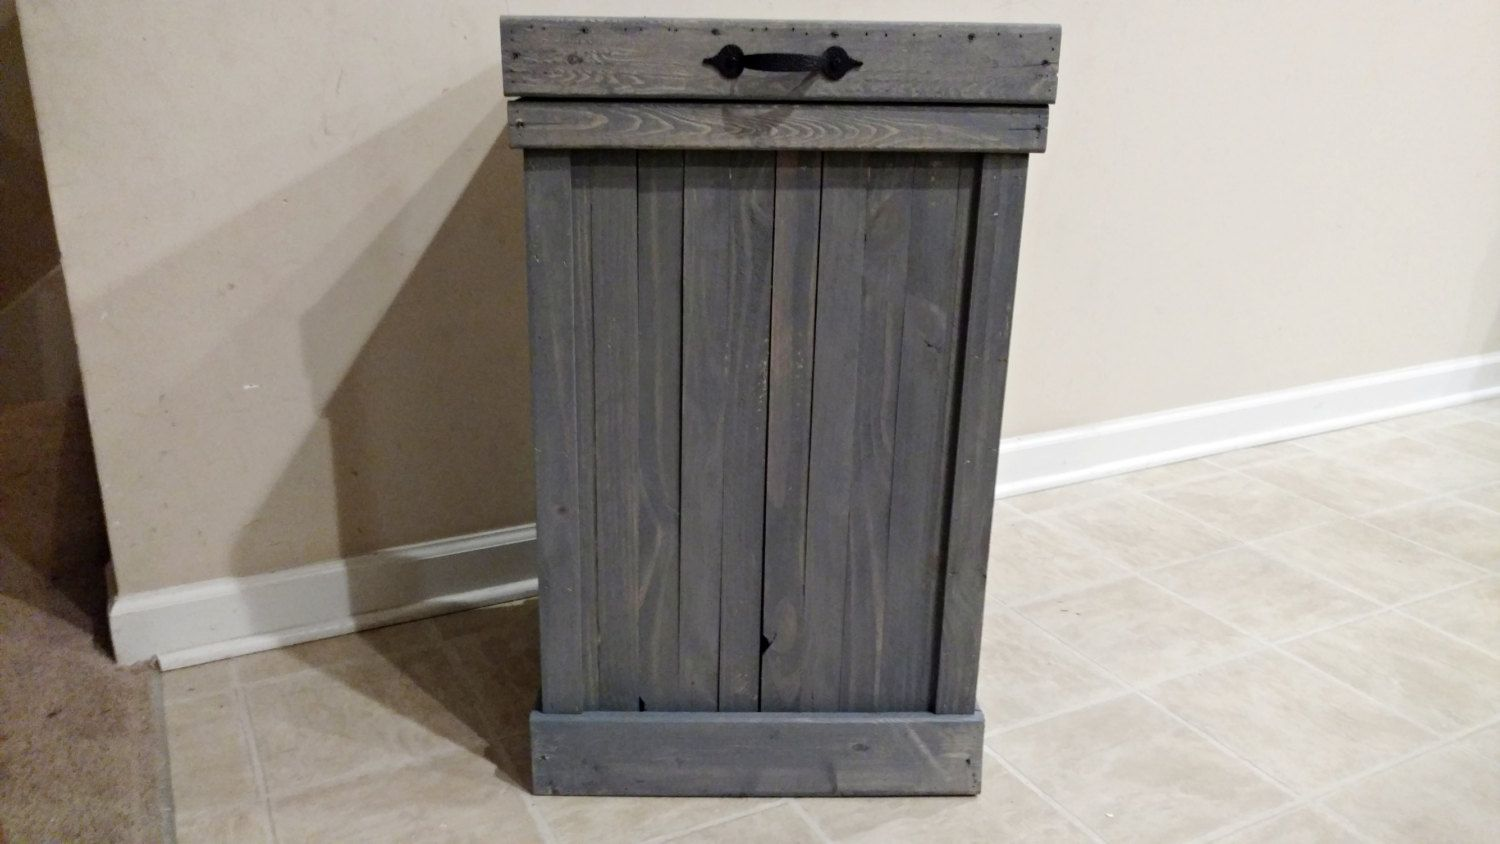 Gray Wash 30 Gallon Rustic Wood Kitchen Trash Can Trash Bin Farmhouse Kitchen Decor Country Kitchen Garbage Can Wood Trash Can Wood Bin Kitchen Trash Cans